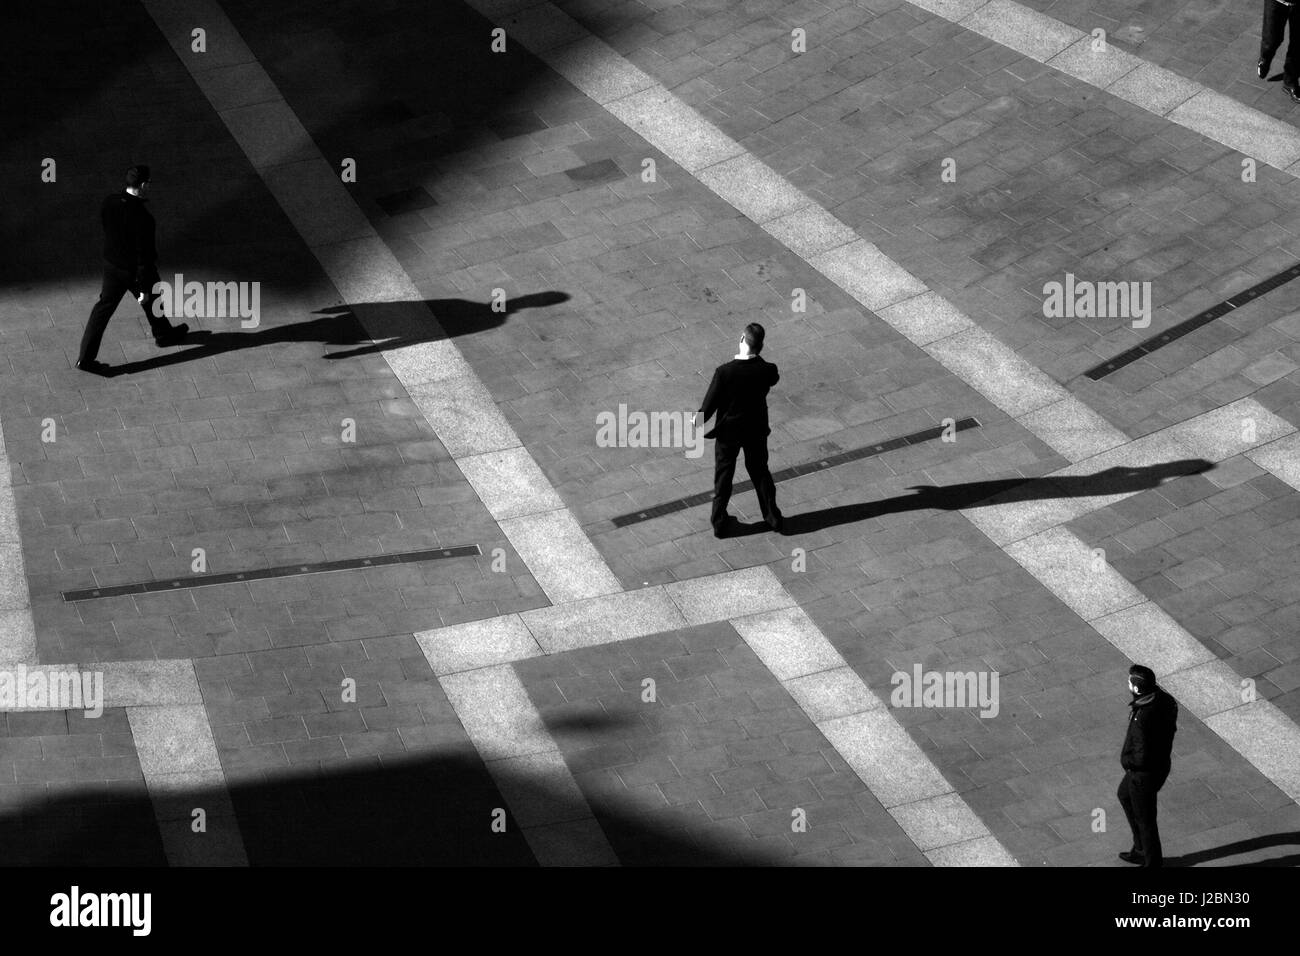 Aerial view of Paternoster Square, City of London, UK - Stock Image